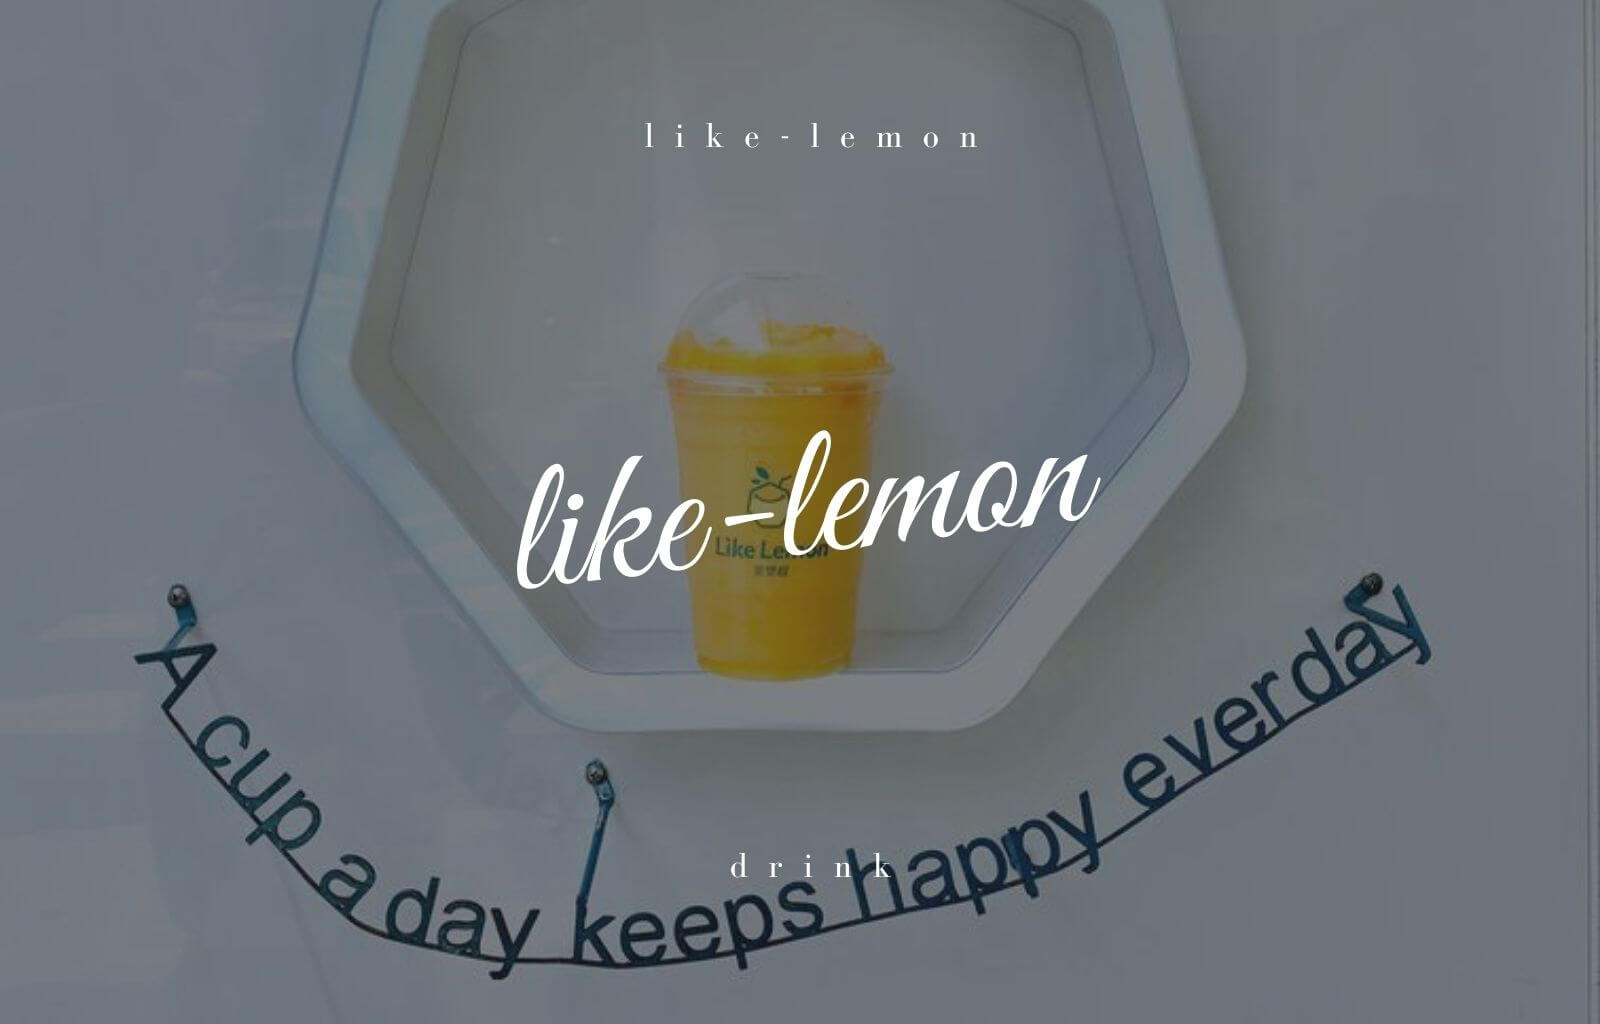 萊樂檬 Like Lemon